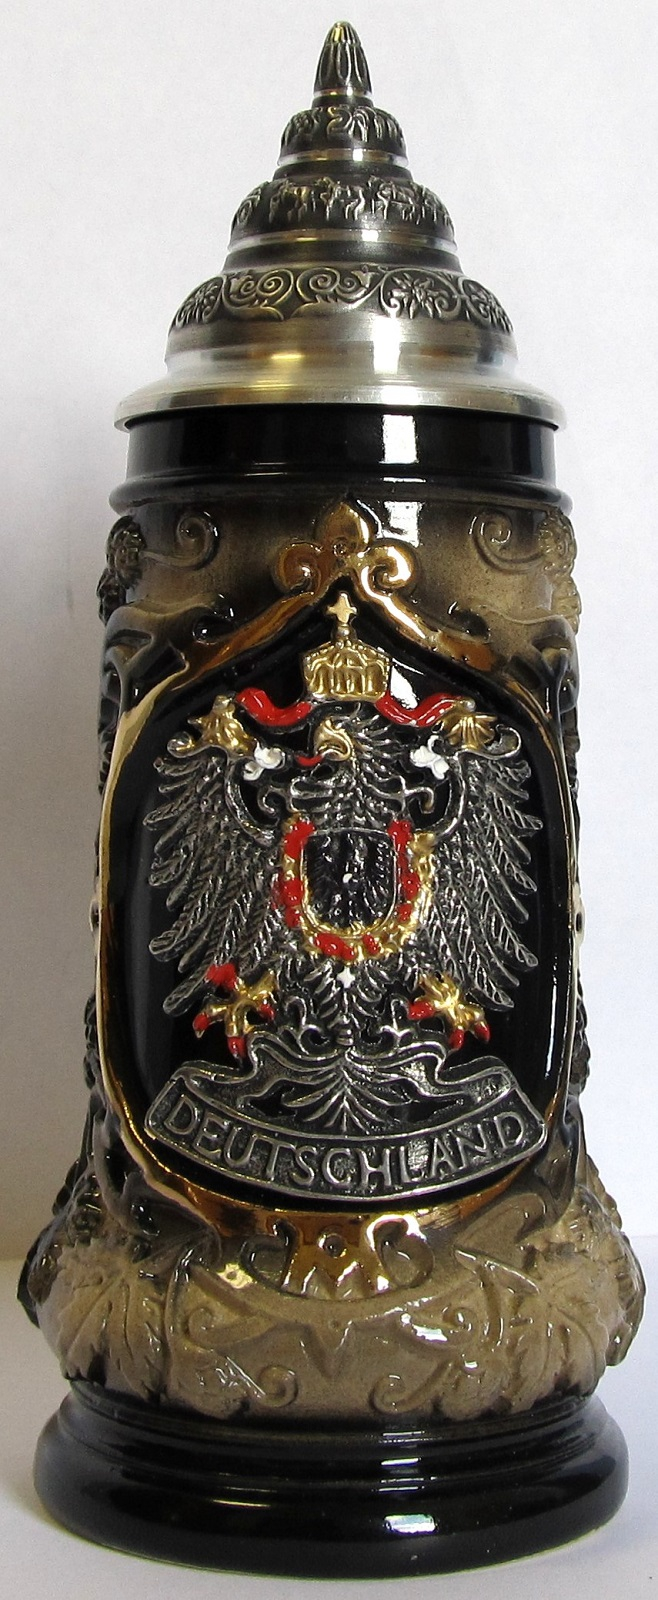 Deutchland Germany Black and Gold Eagle Crest Souvenir German Beer Stein .125 L